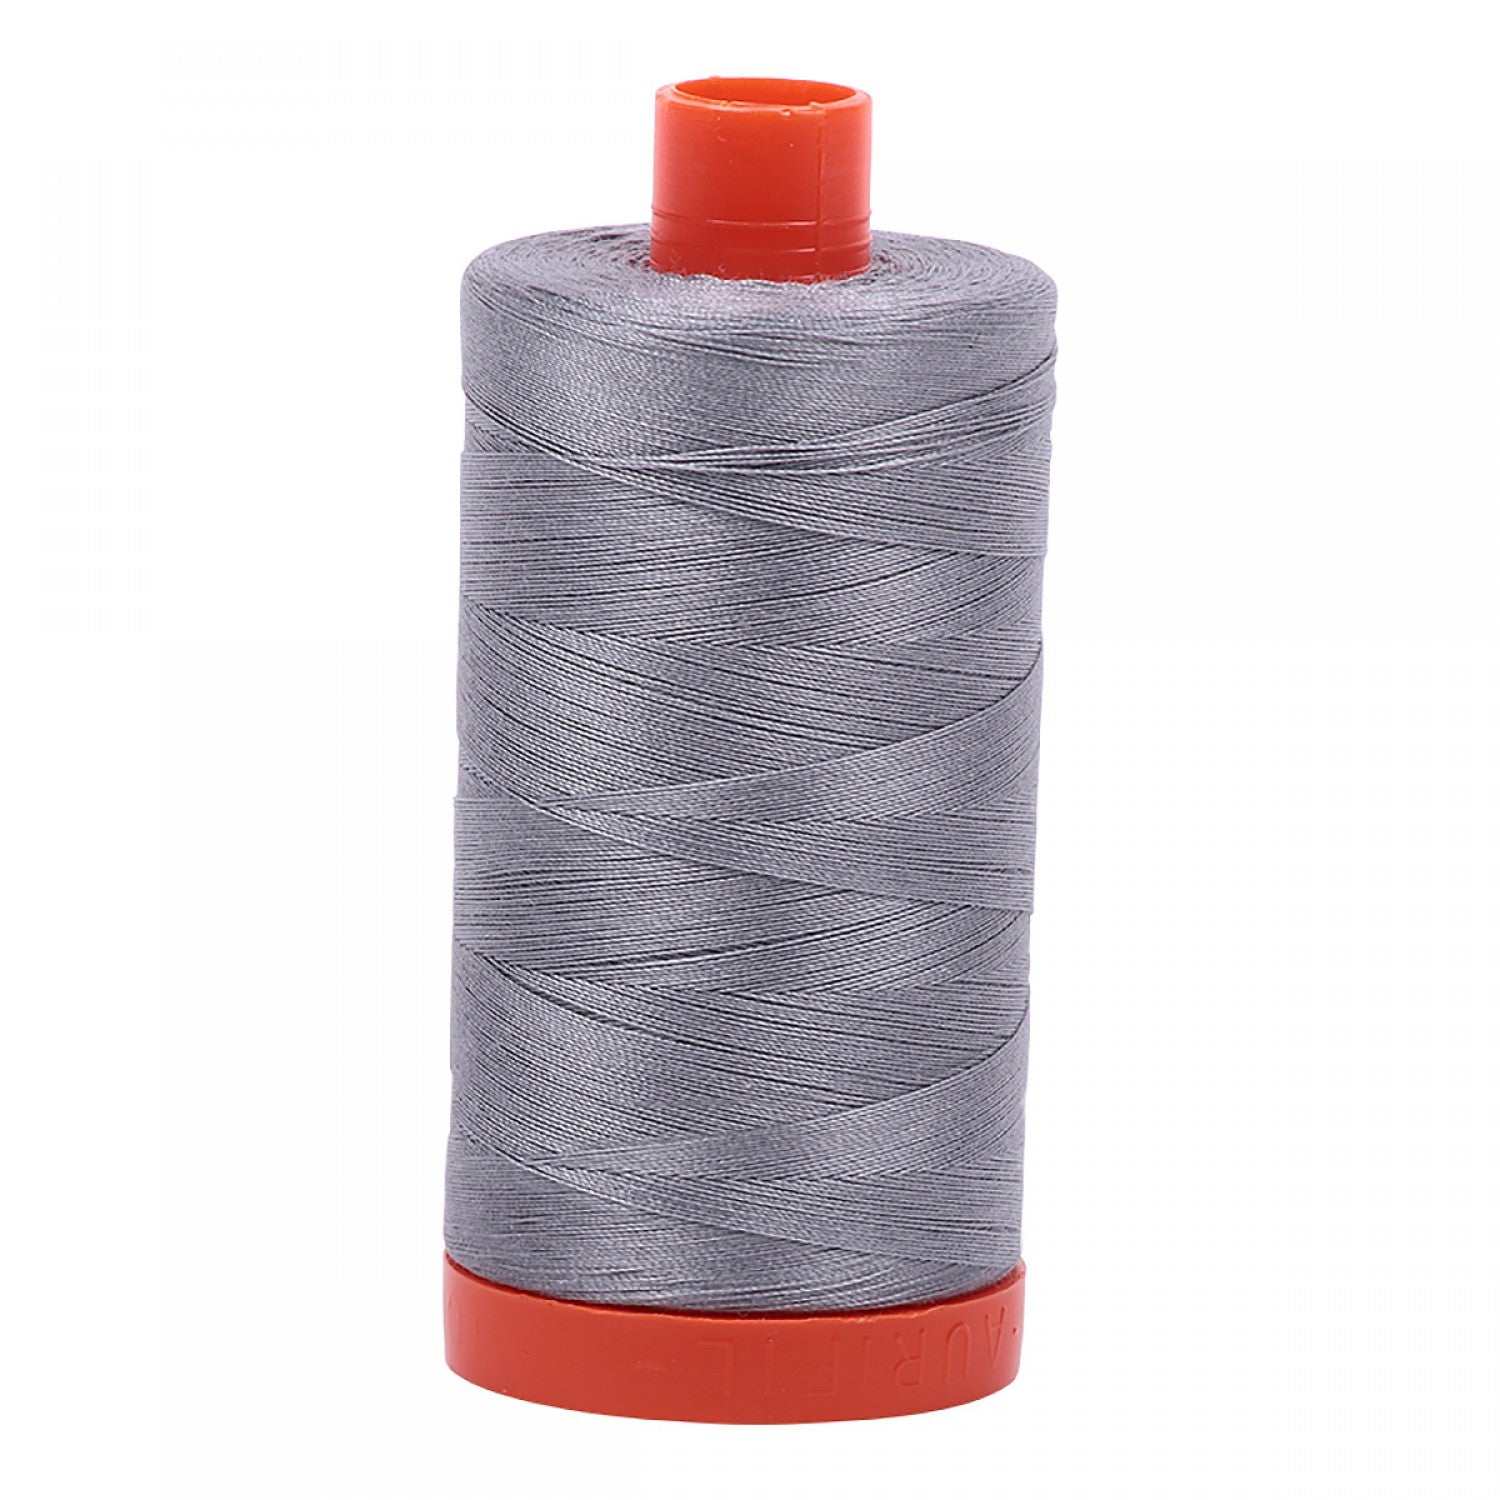 Large Spool 50wt: 2605 Grey. 1422 yds.  100% Long Staple Mercerized Egyptian Cotton.  For Machine Embroidery, Quilting and Serging.